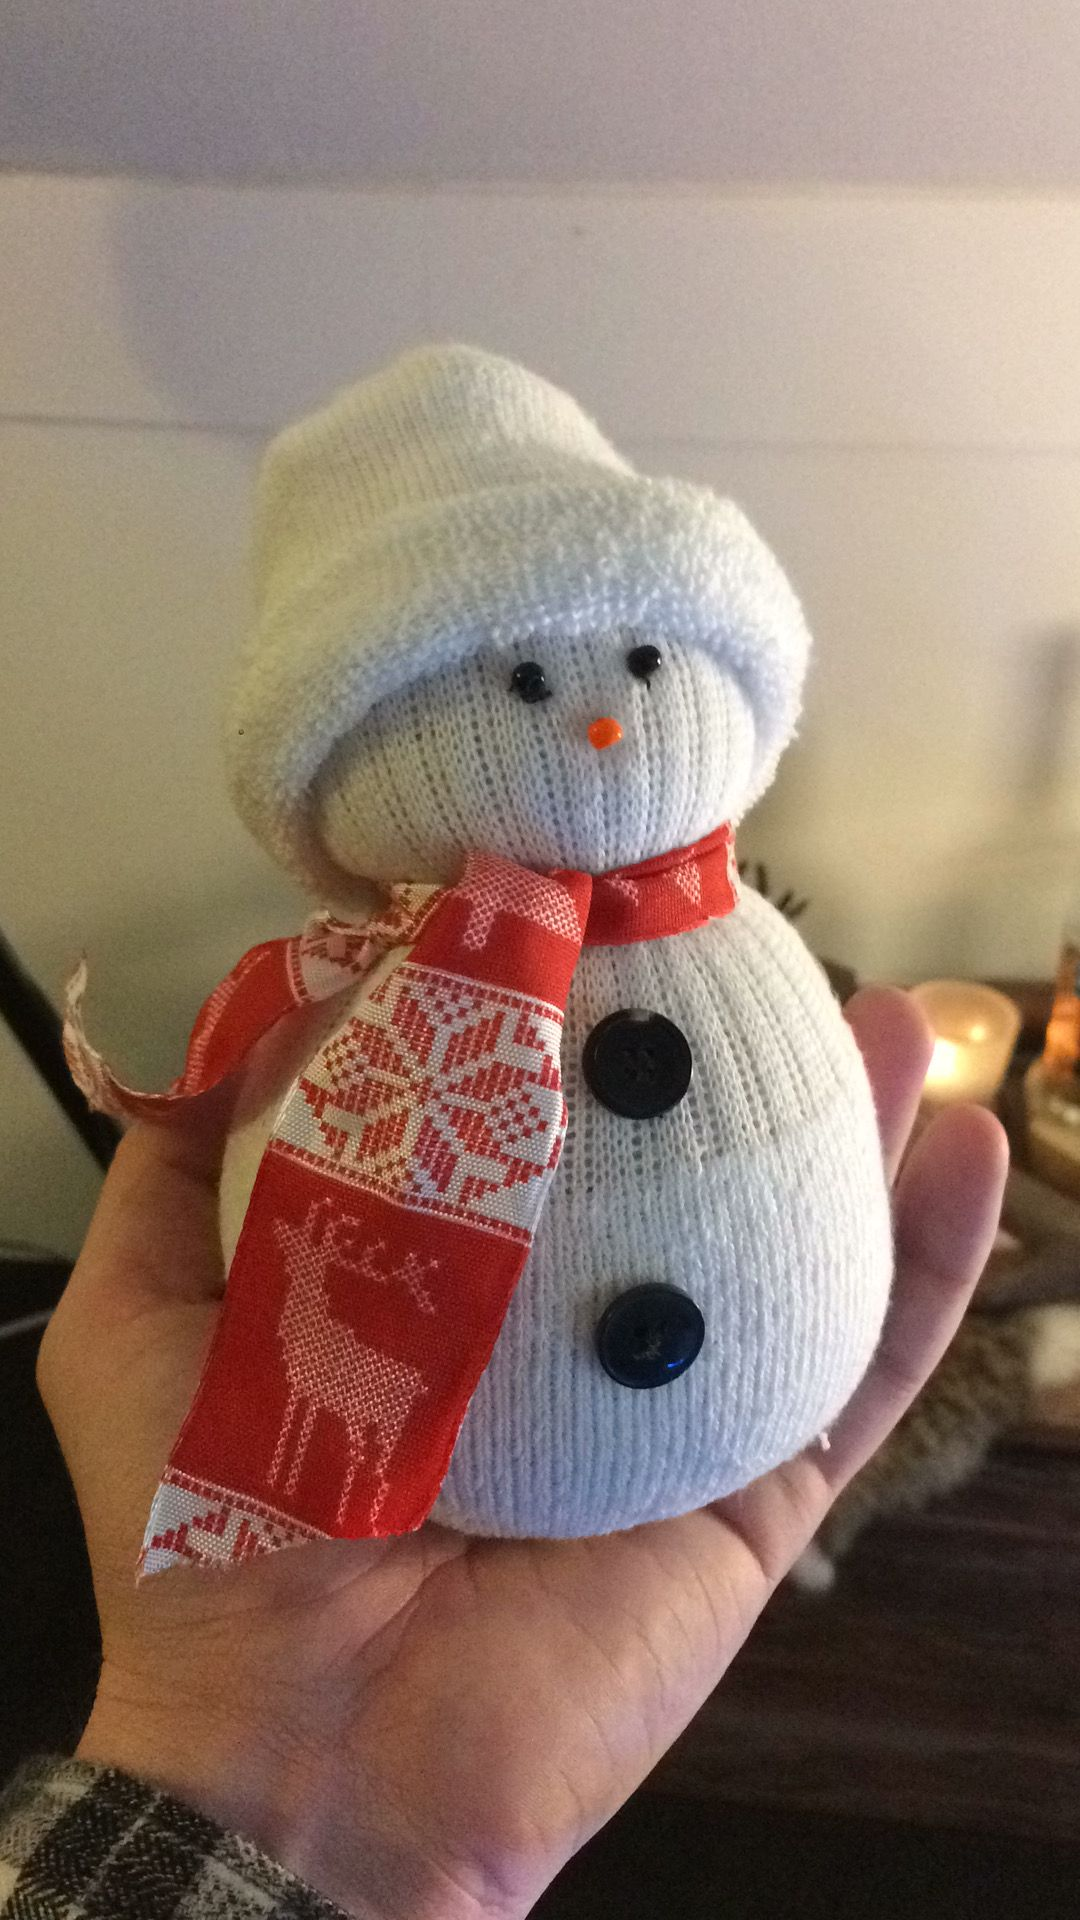 Snowman made from a sock and rice!! ⛄️ ❄️ ❄️